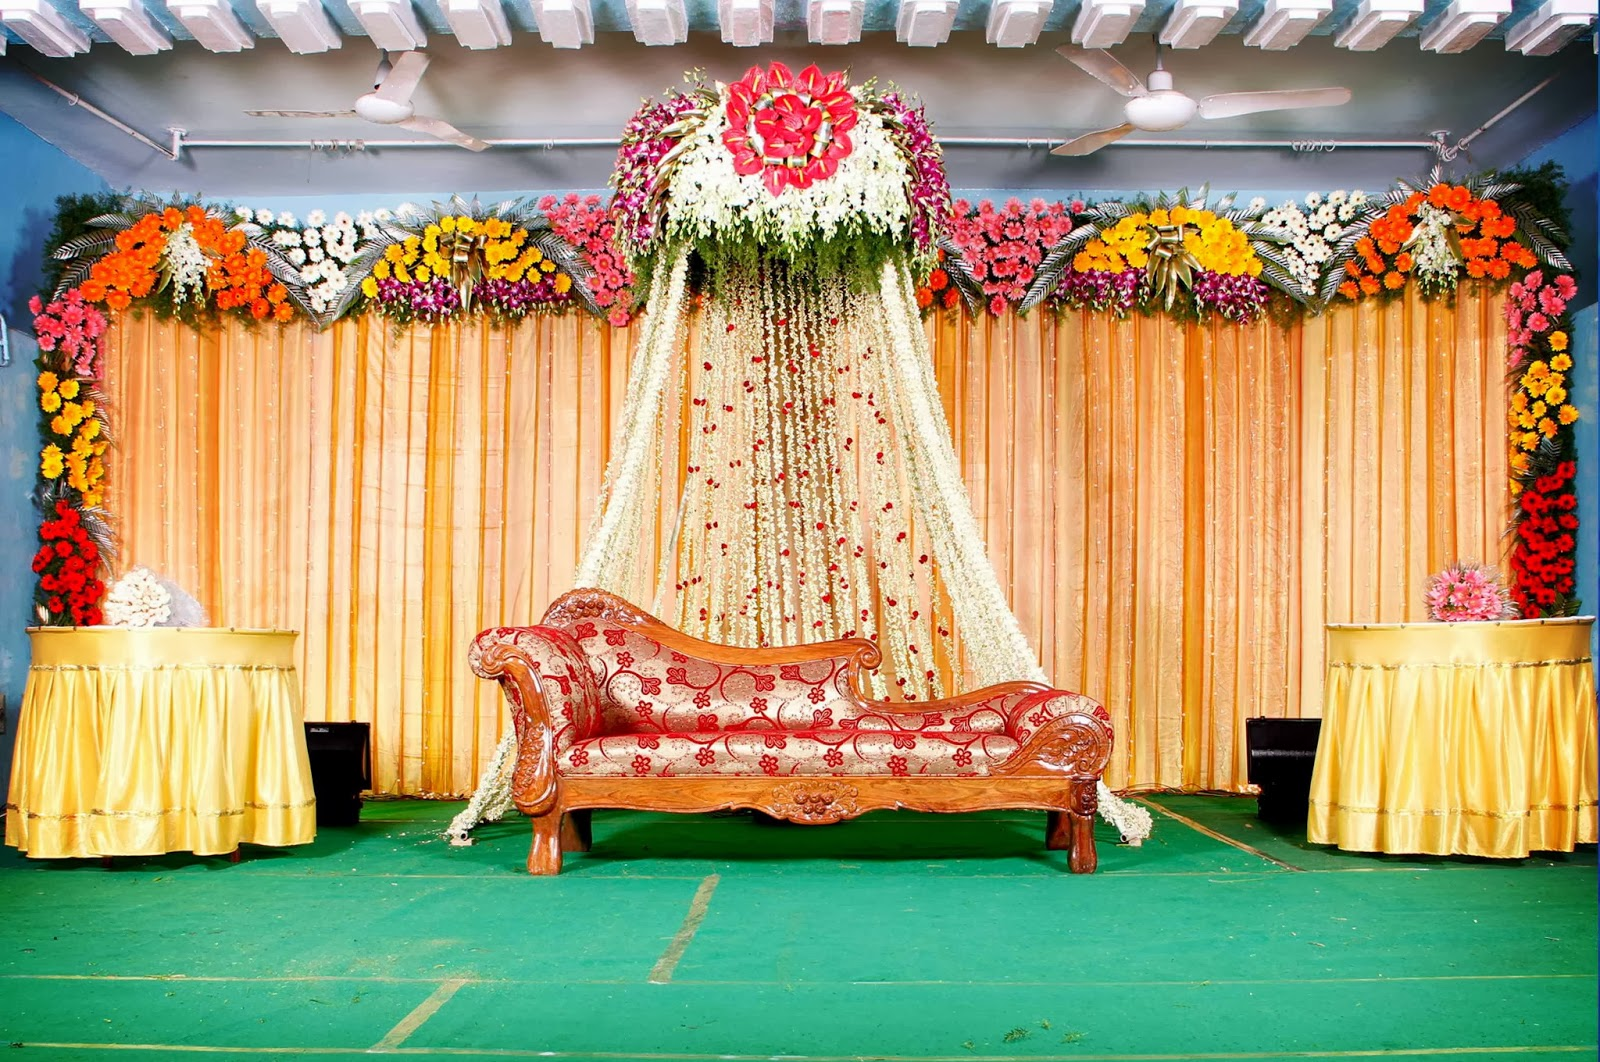 Jana poojitha services cloth flower decorated stage 002 for Background decoration